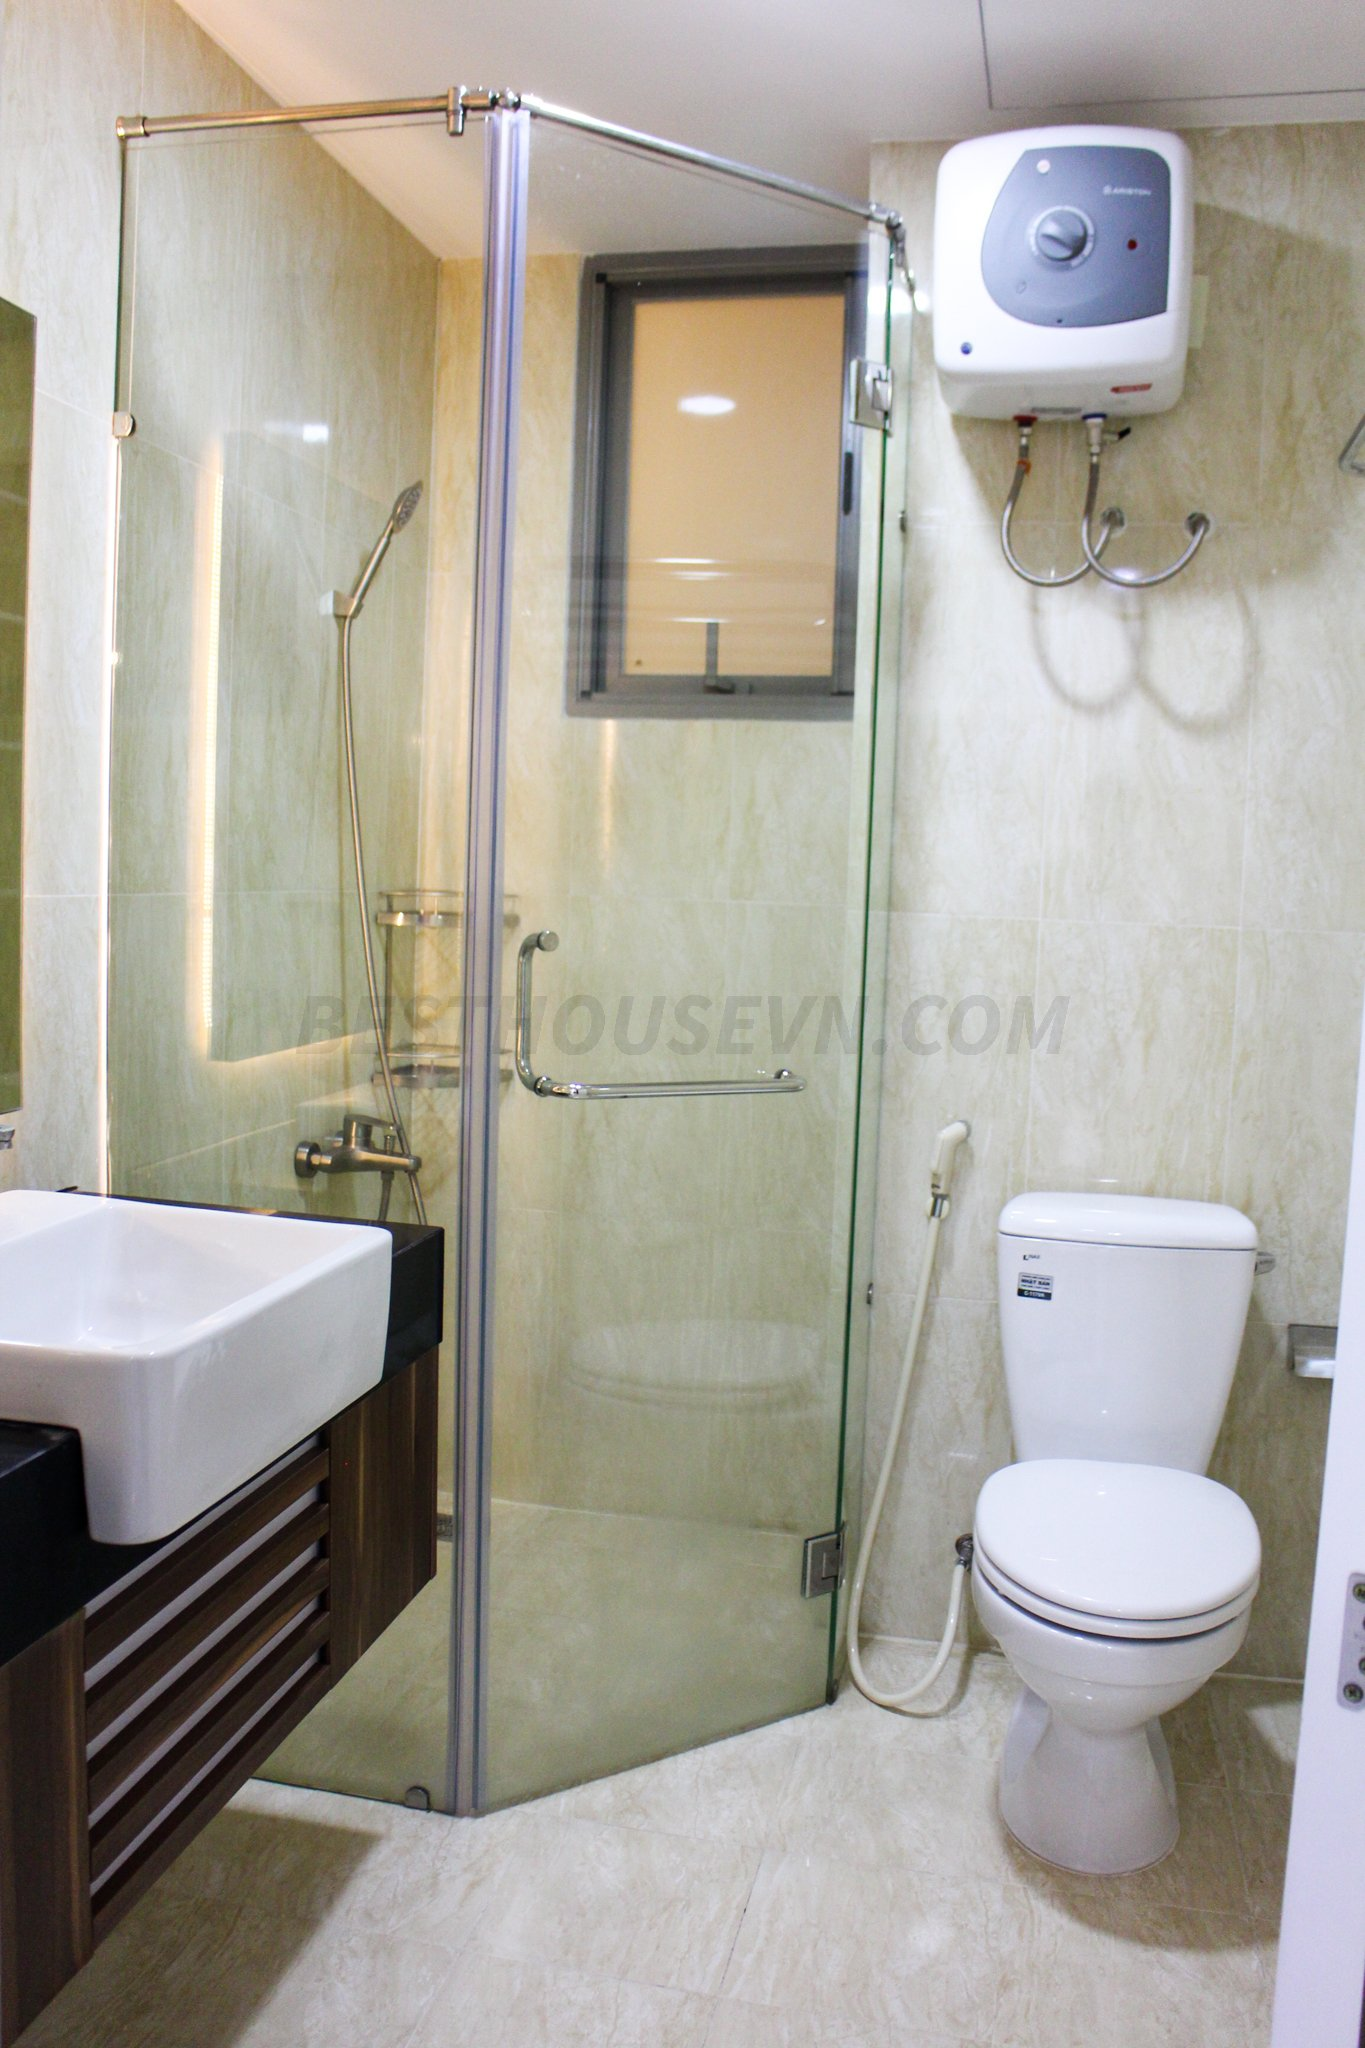 HCheap apartment in Hung phuc for rent